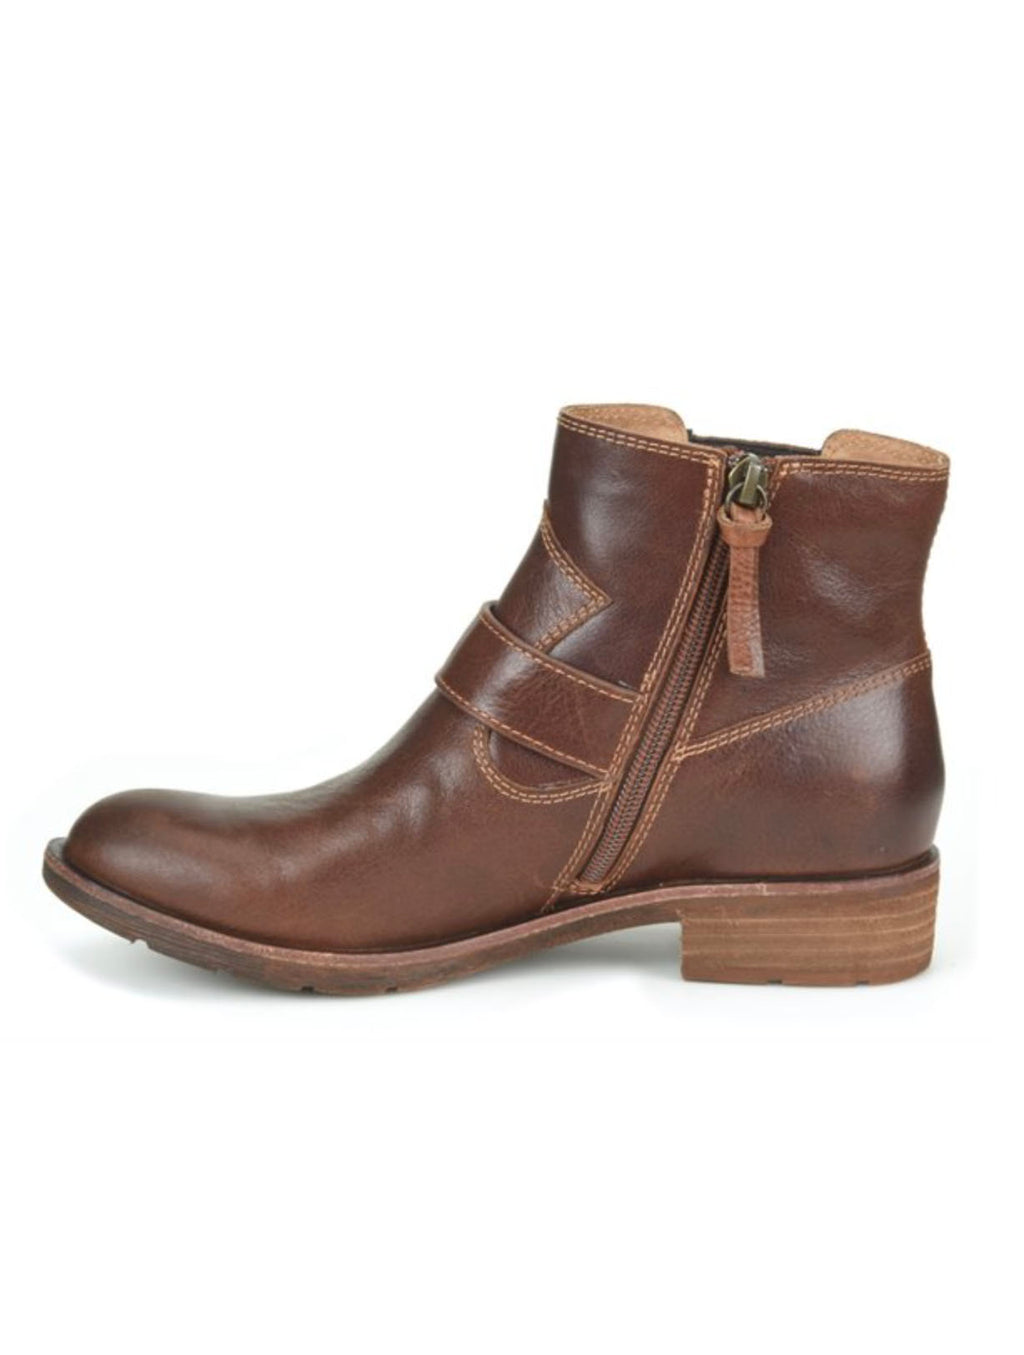 Sofft Brocke Moto Boot in Whiskey